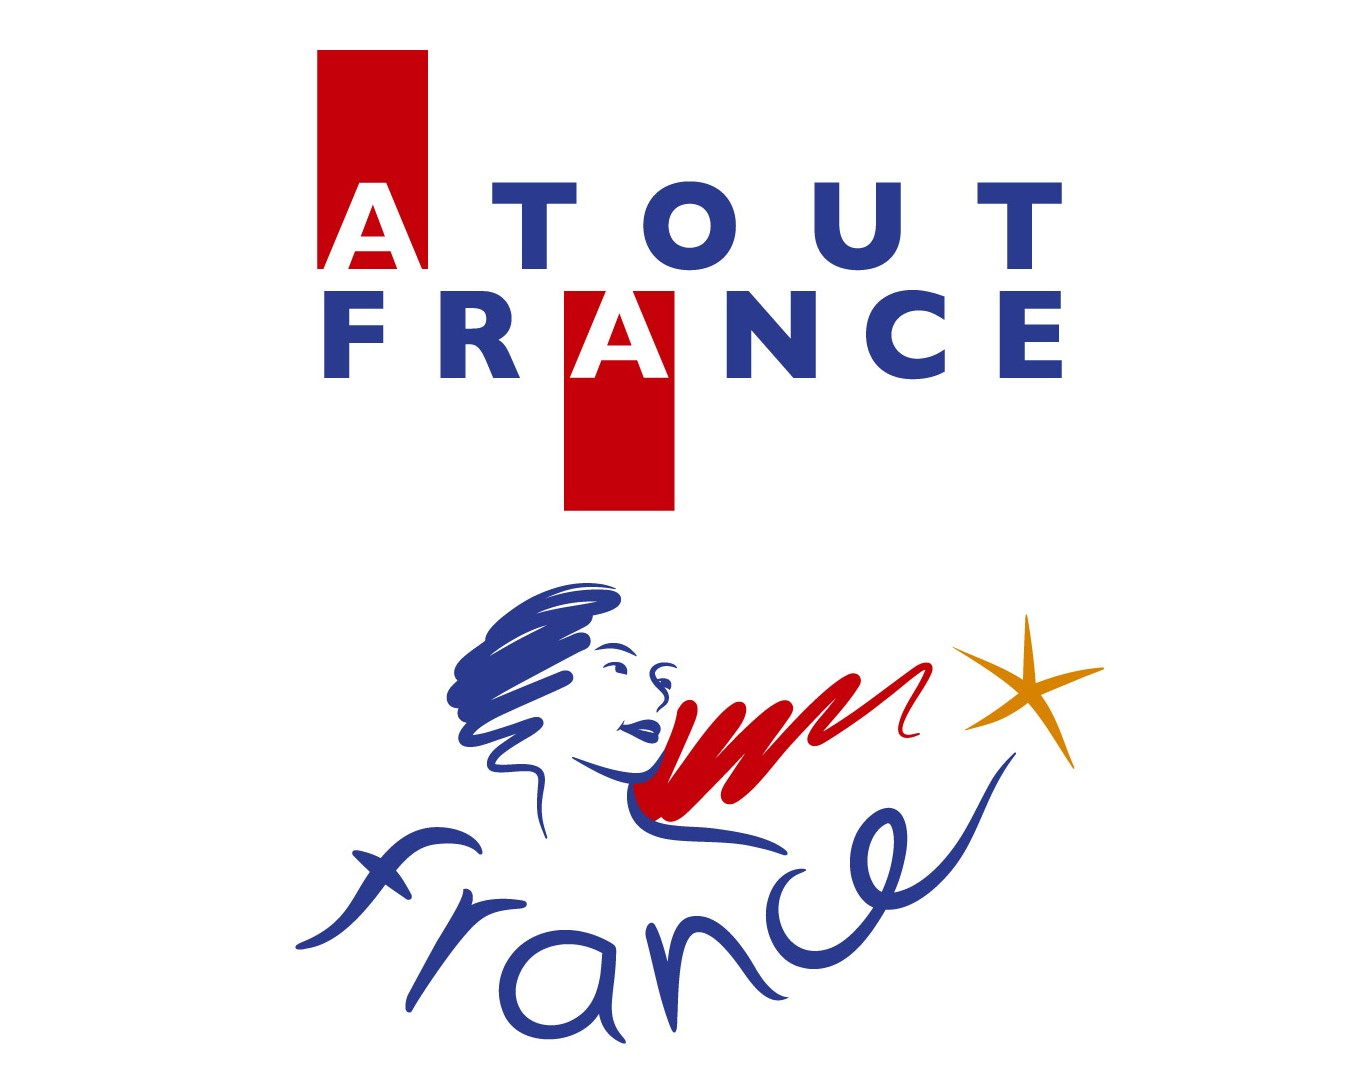 Logo atout france agence de voyage Erronda evenements